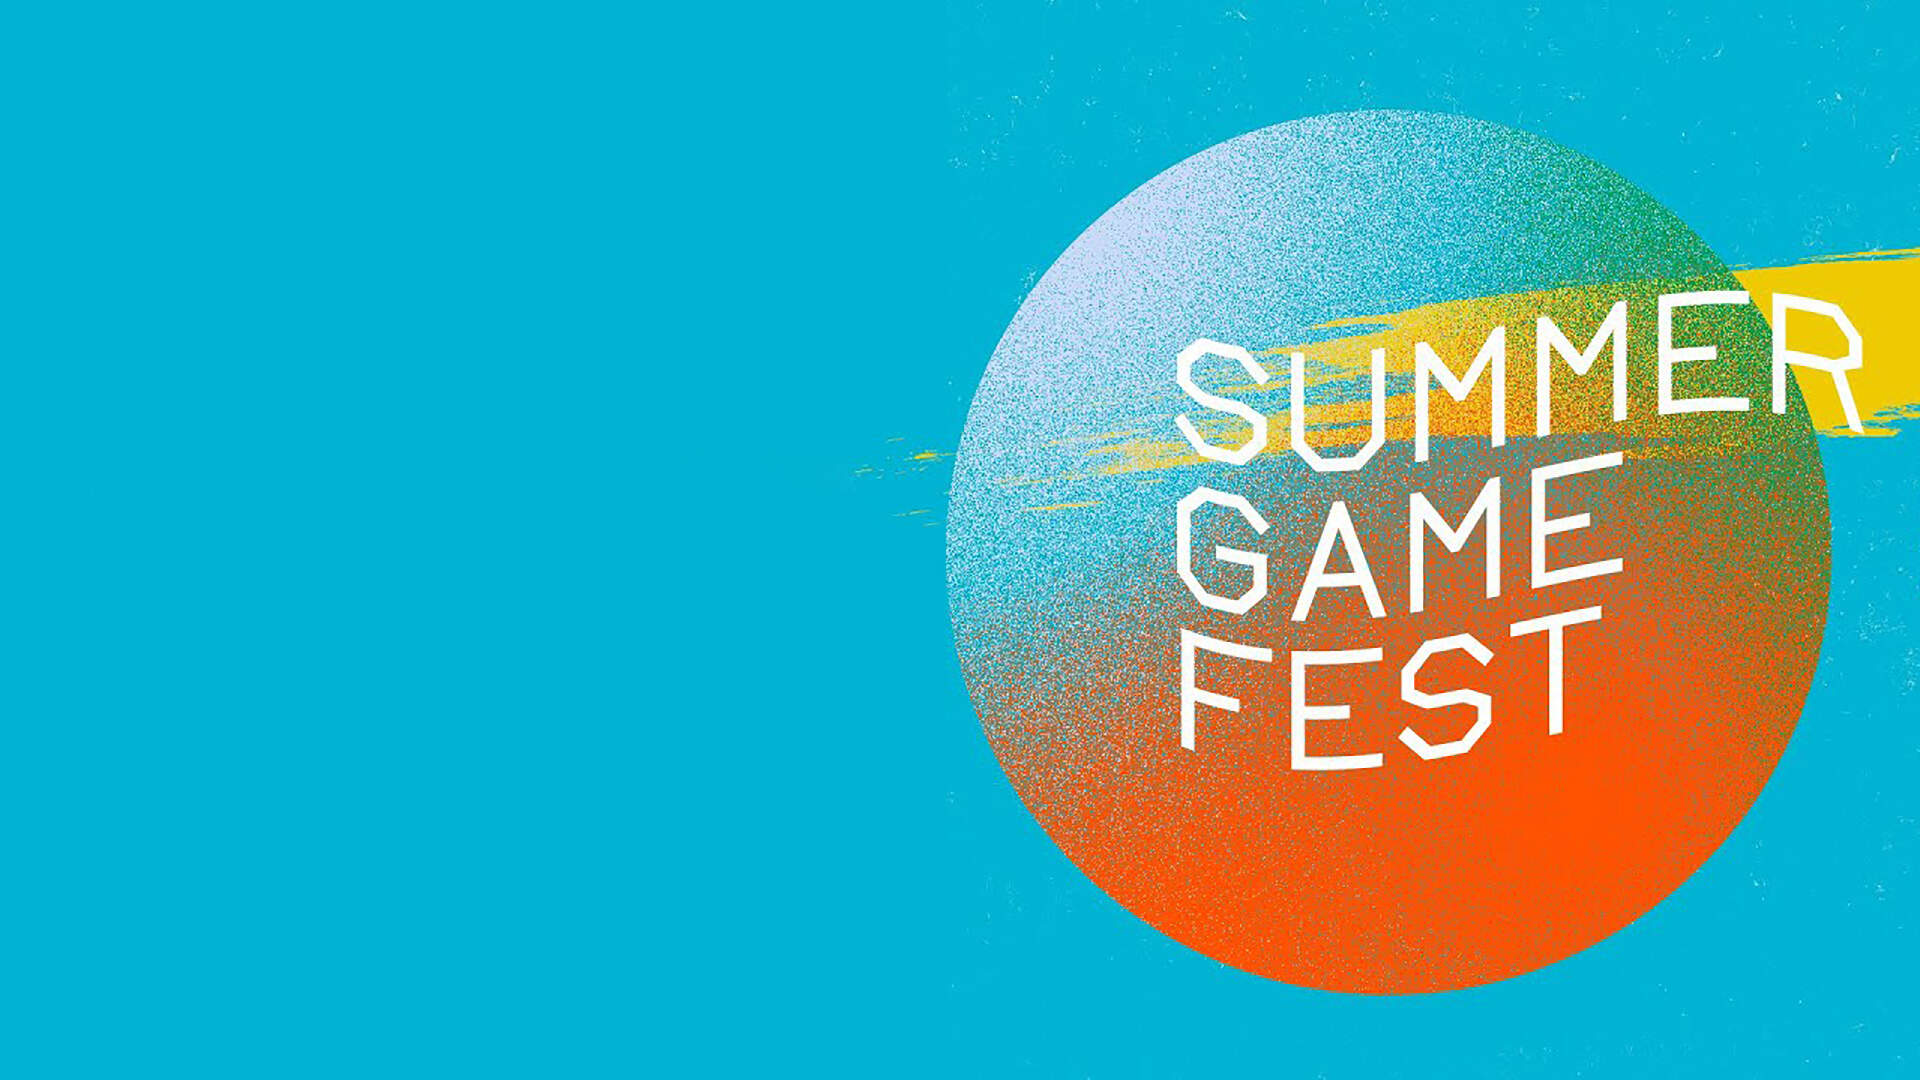 Xbox Will Host Over 60 Demos As Part of Summer Game Fest Event This Month